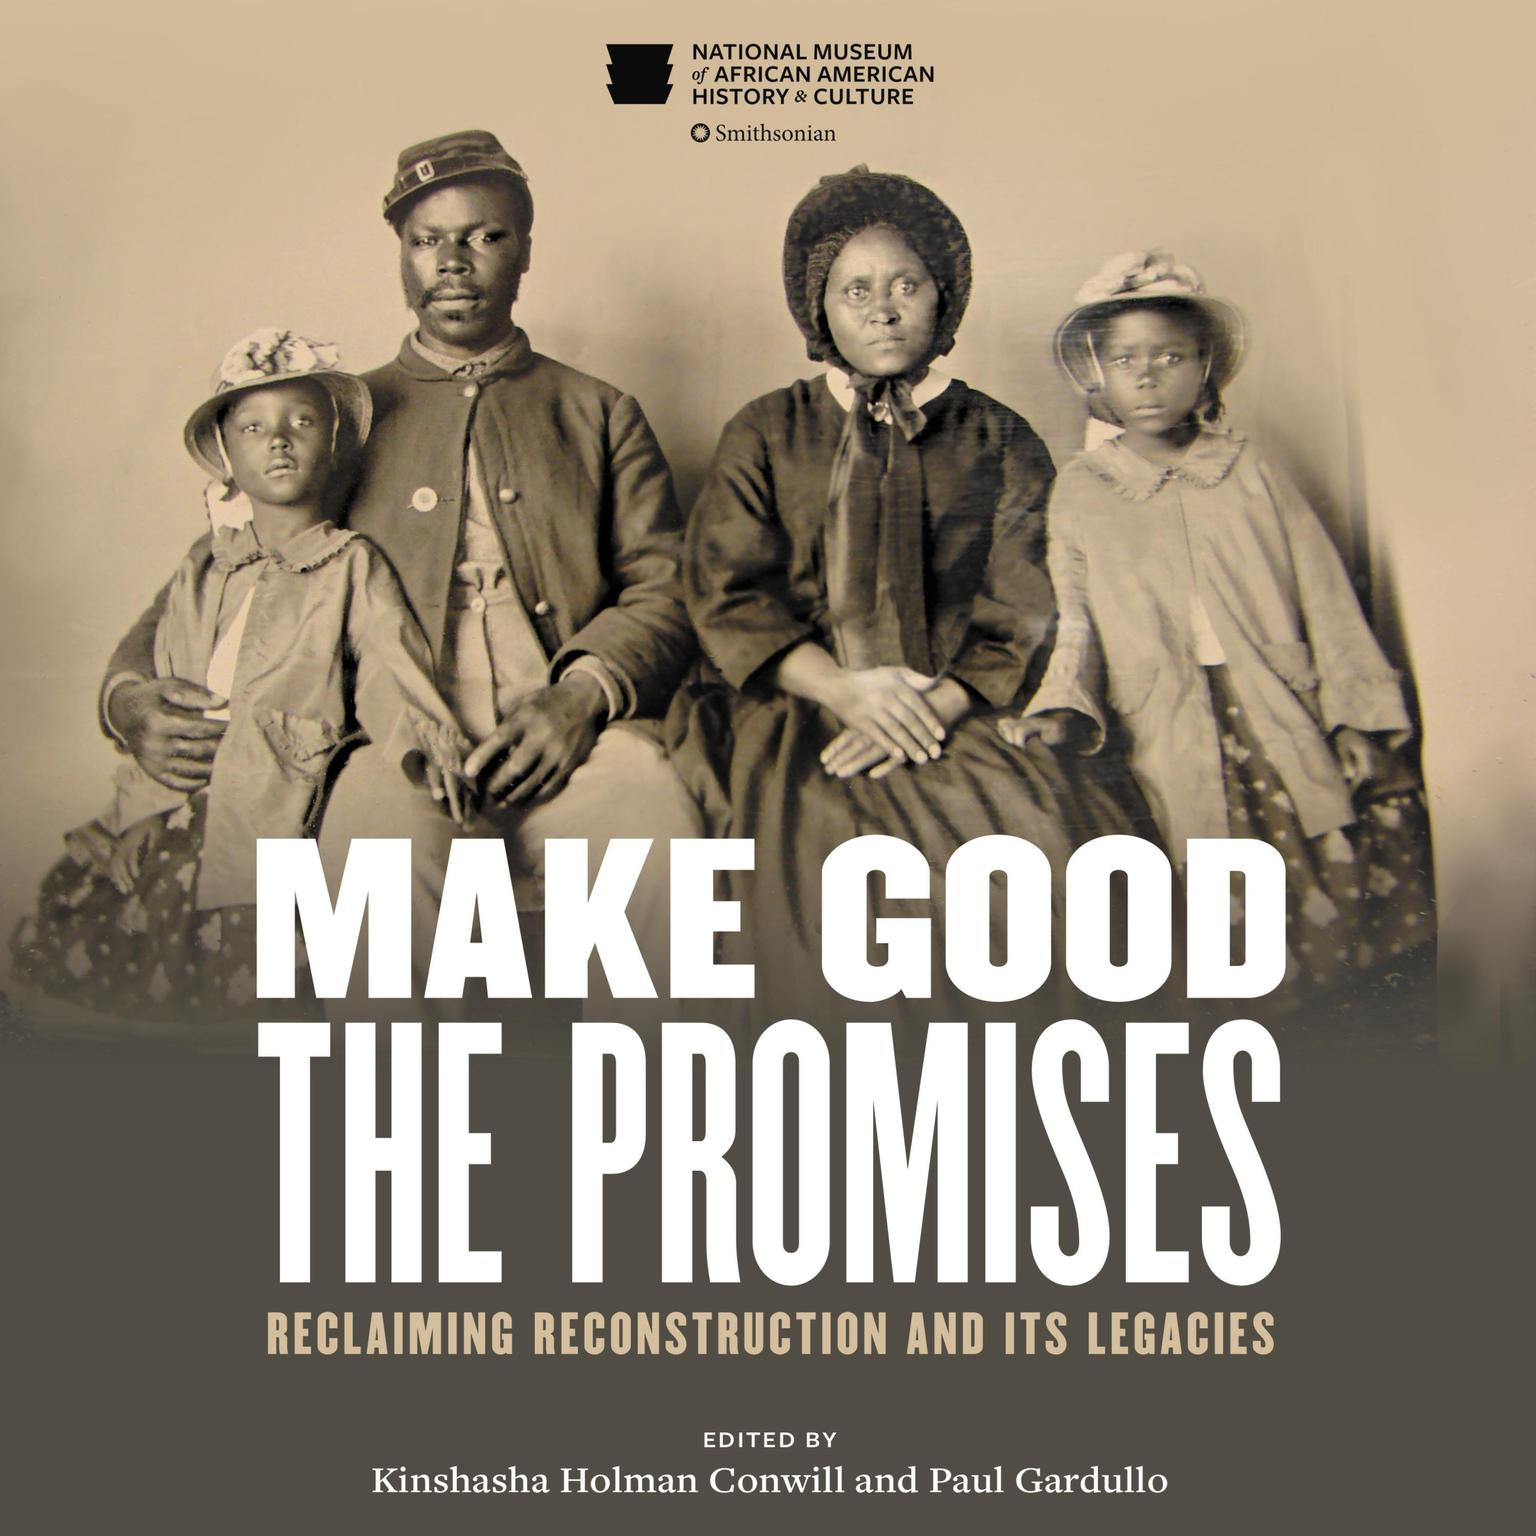 Make Good the Promises: Reclaiming Reconstruction and Its Legacies Audiobook, by Kinshasha Holman Conwill